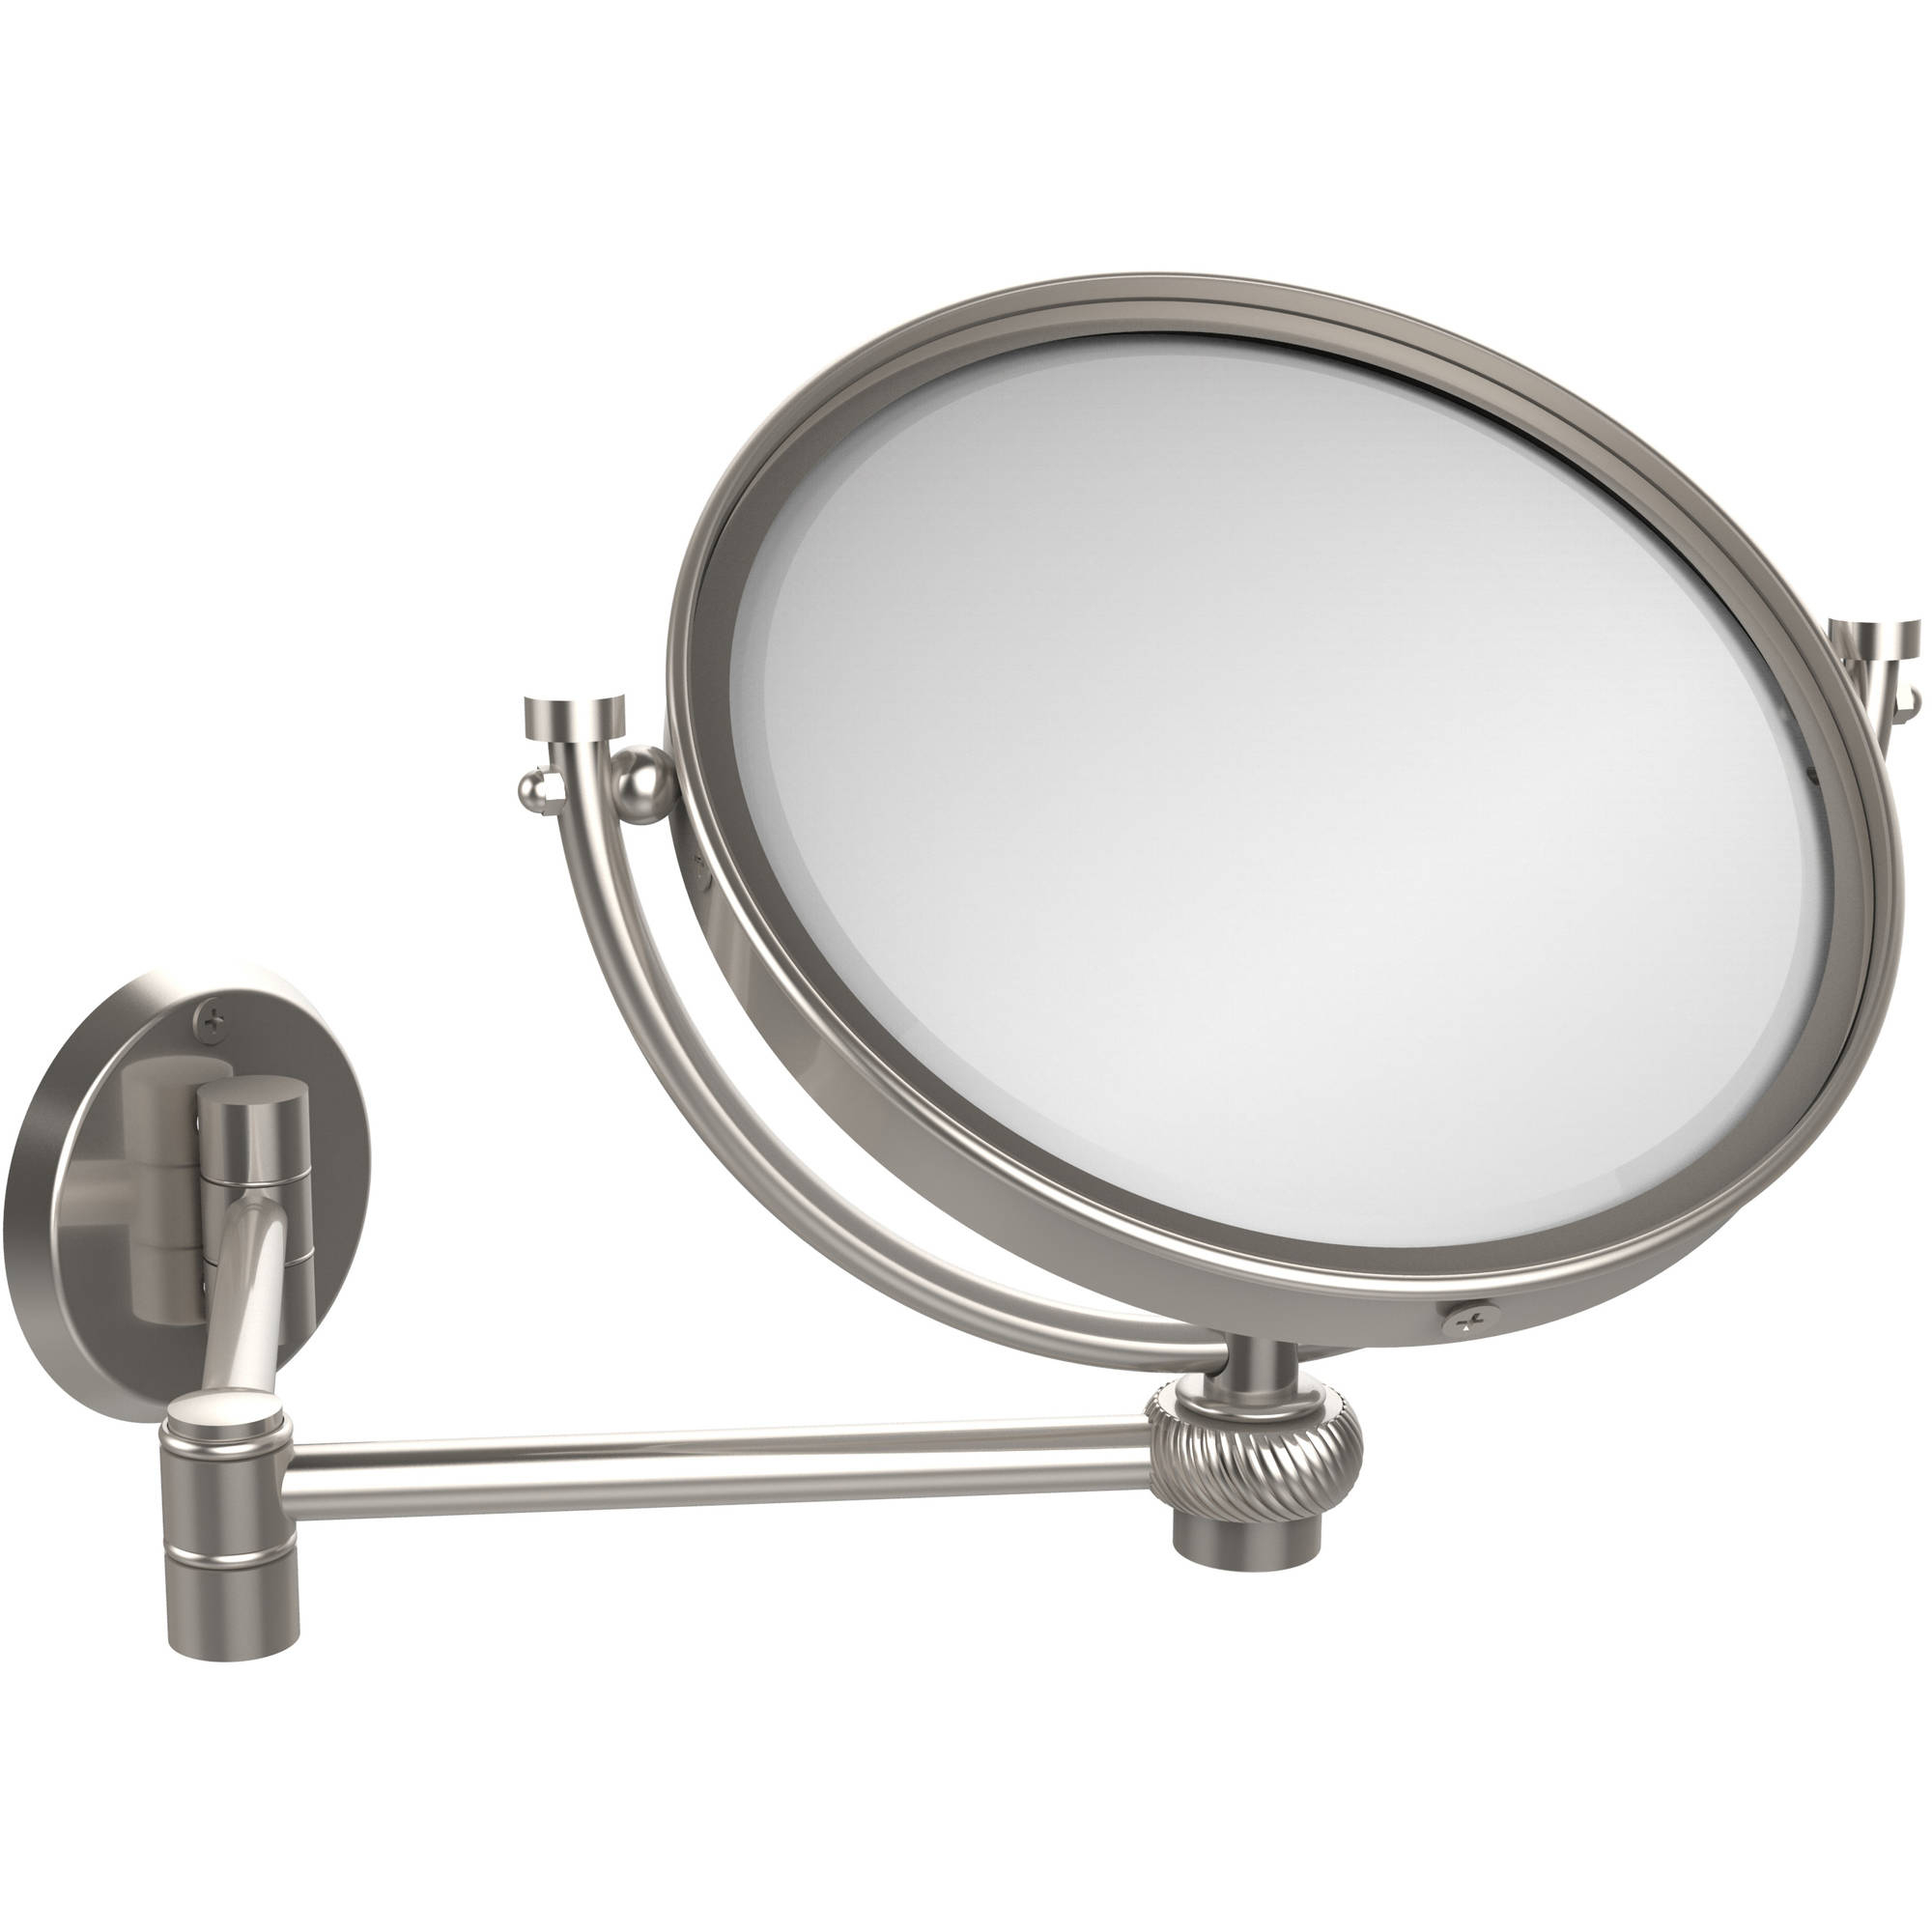 "Extending Wall Mirrors For Fashionable 8"" Wall Mounted Extending Make Up Mirror, 4X Magnification With Twist  Accent (Build To Order) (View 7 of 20)"